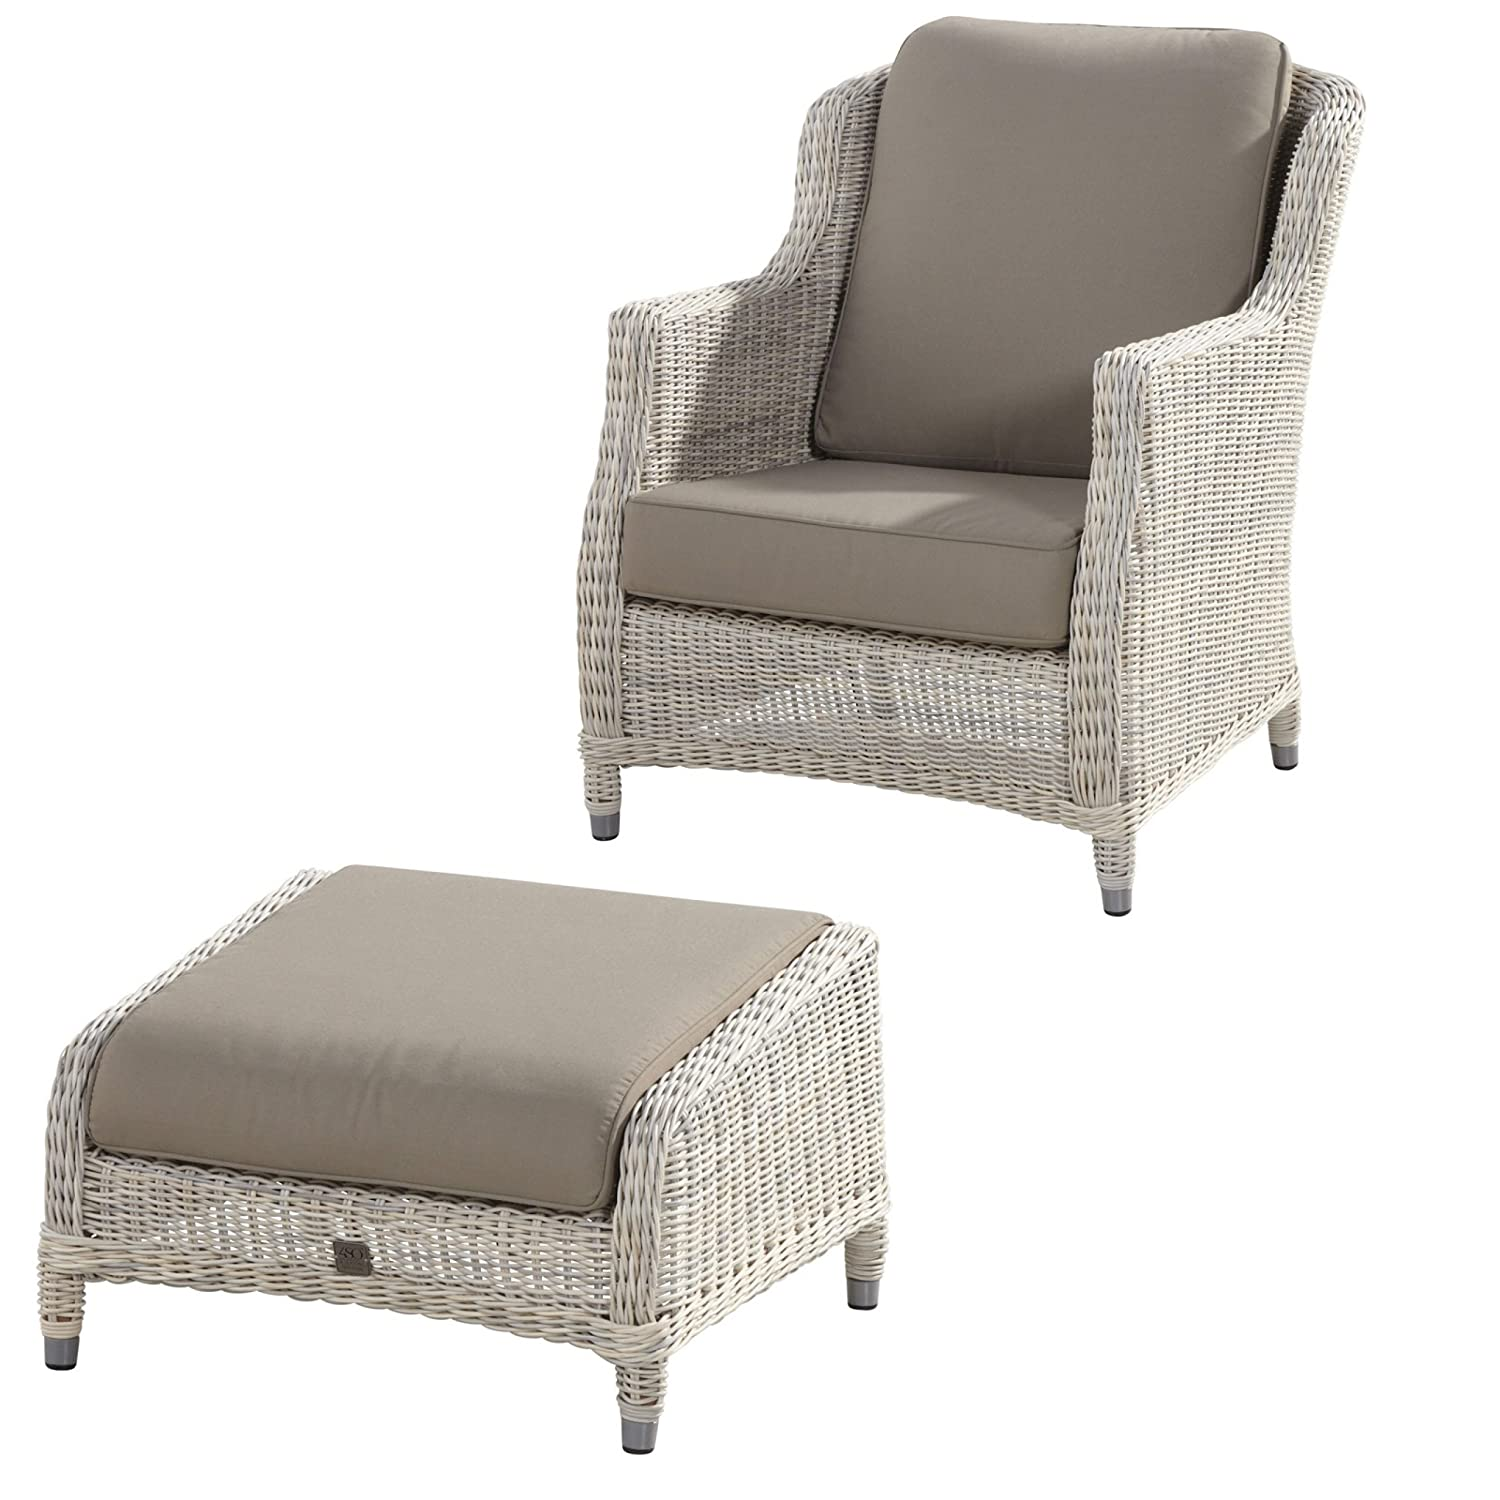 4Seasons Outdoor Brighton living Sessel mit Fußhocker Polyrattan Provance